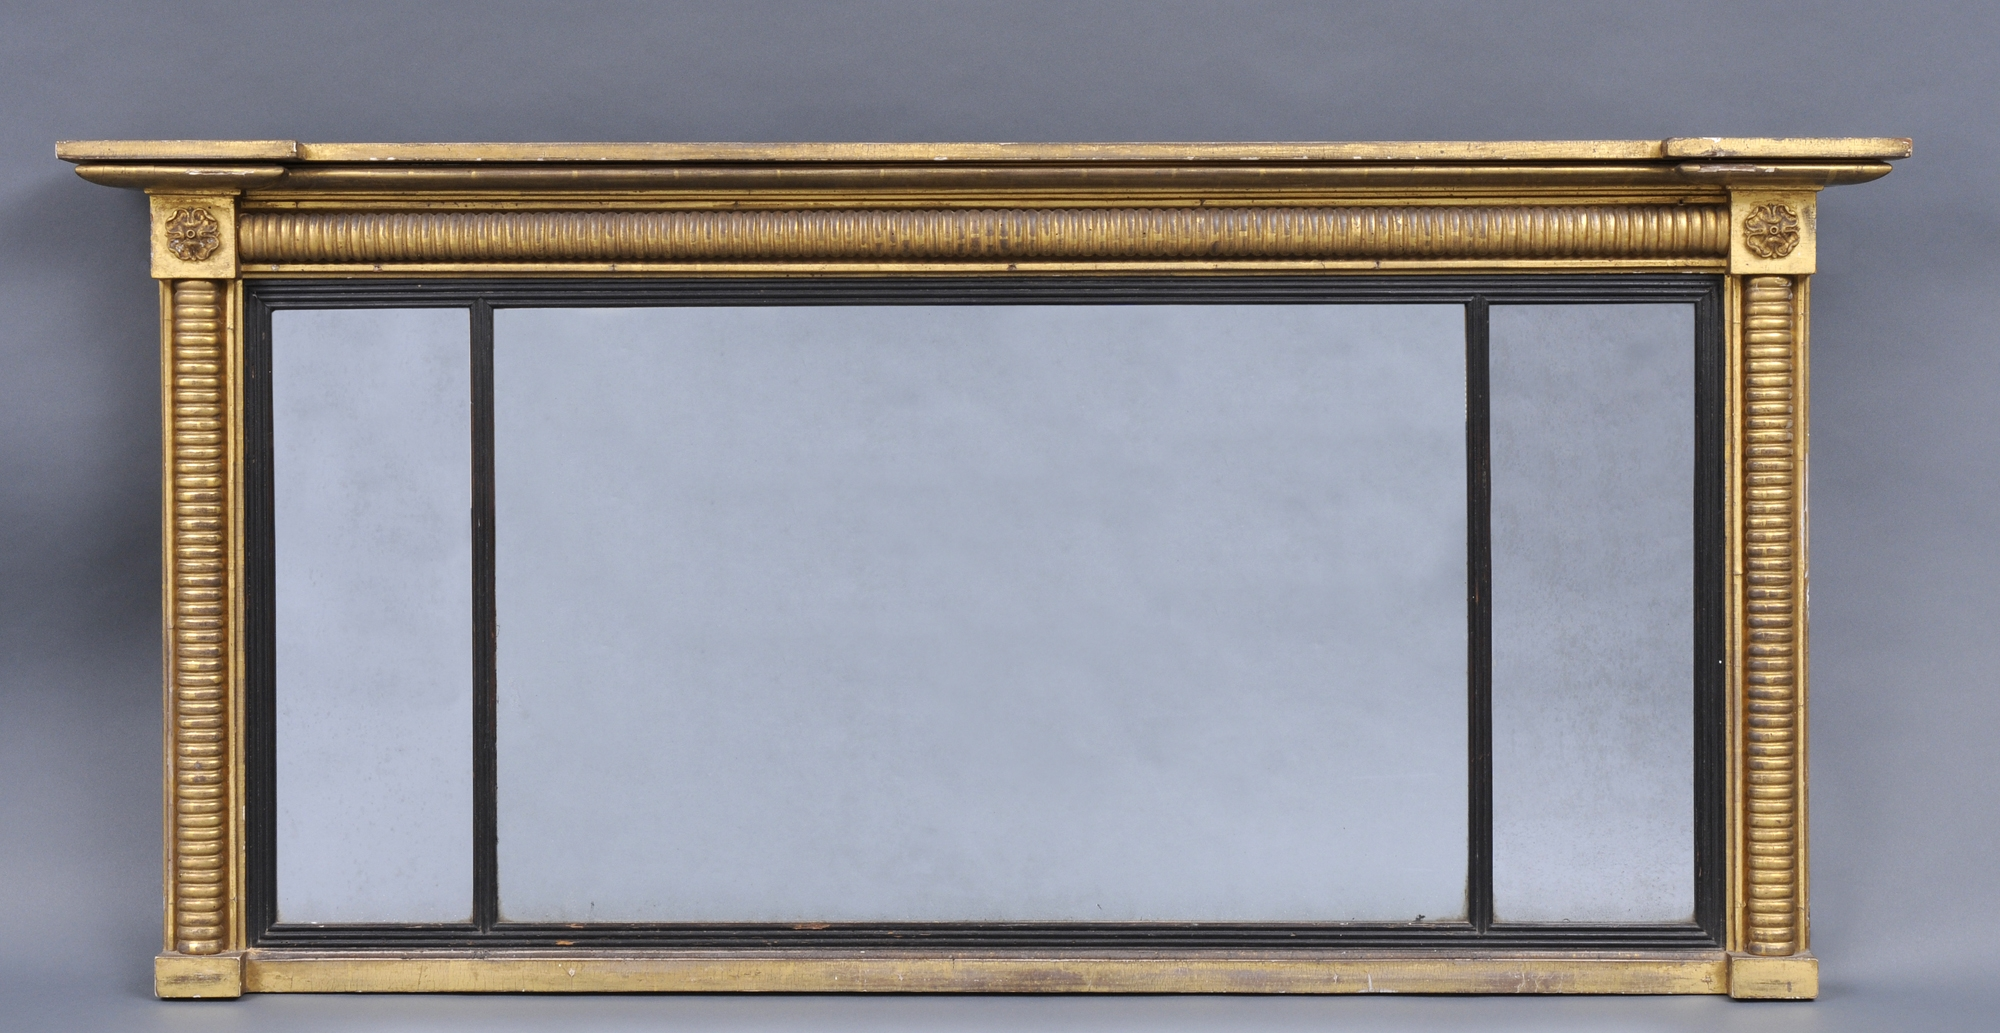 William Iv Antique Overmantle Mirror With Reeded Columns For Antique Overmantle Mirrors (Image 15 of 15)